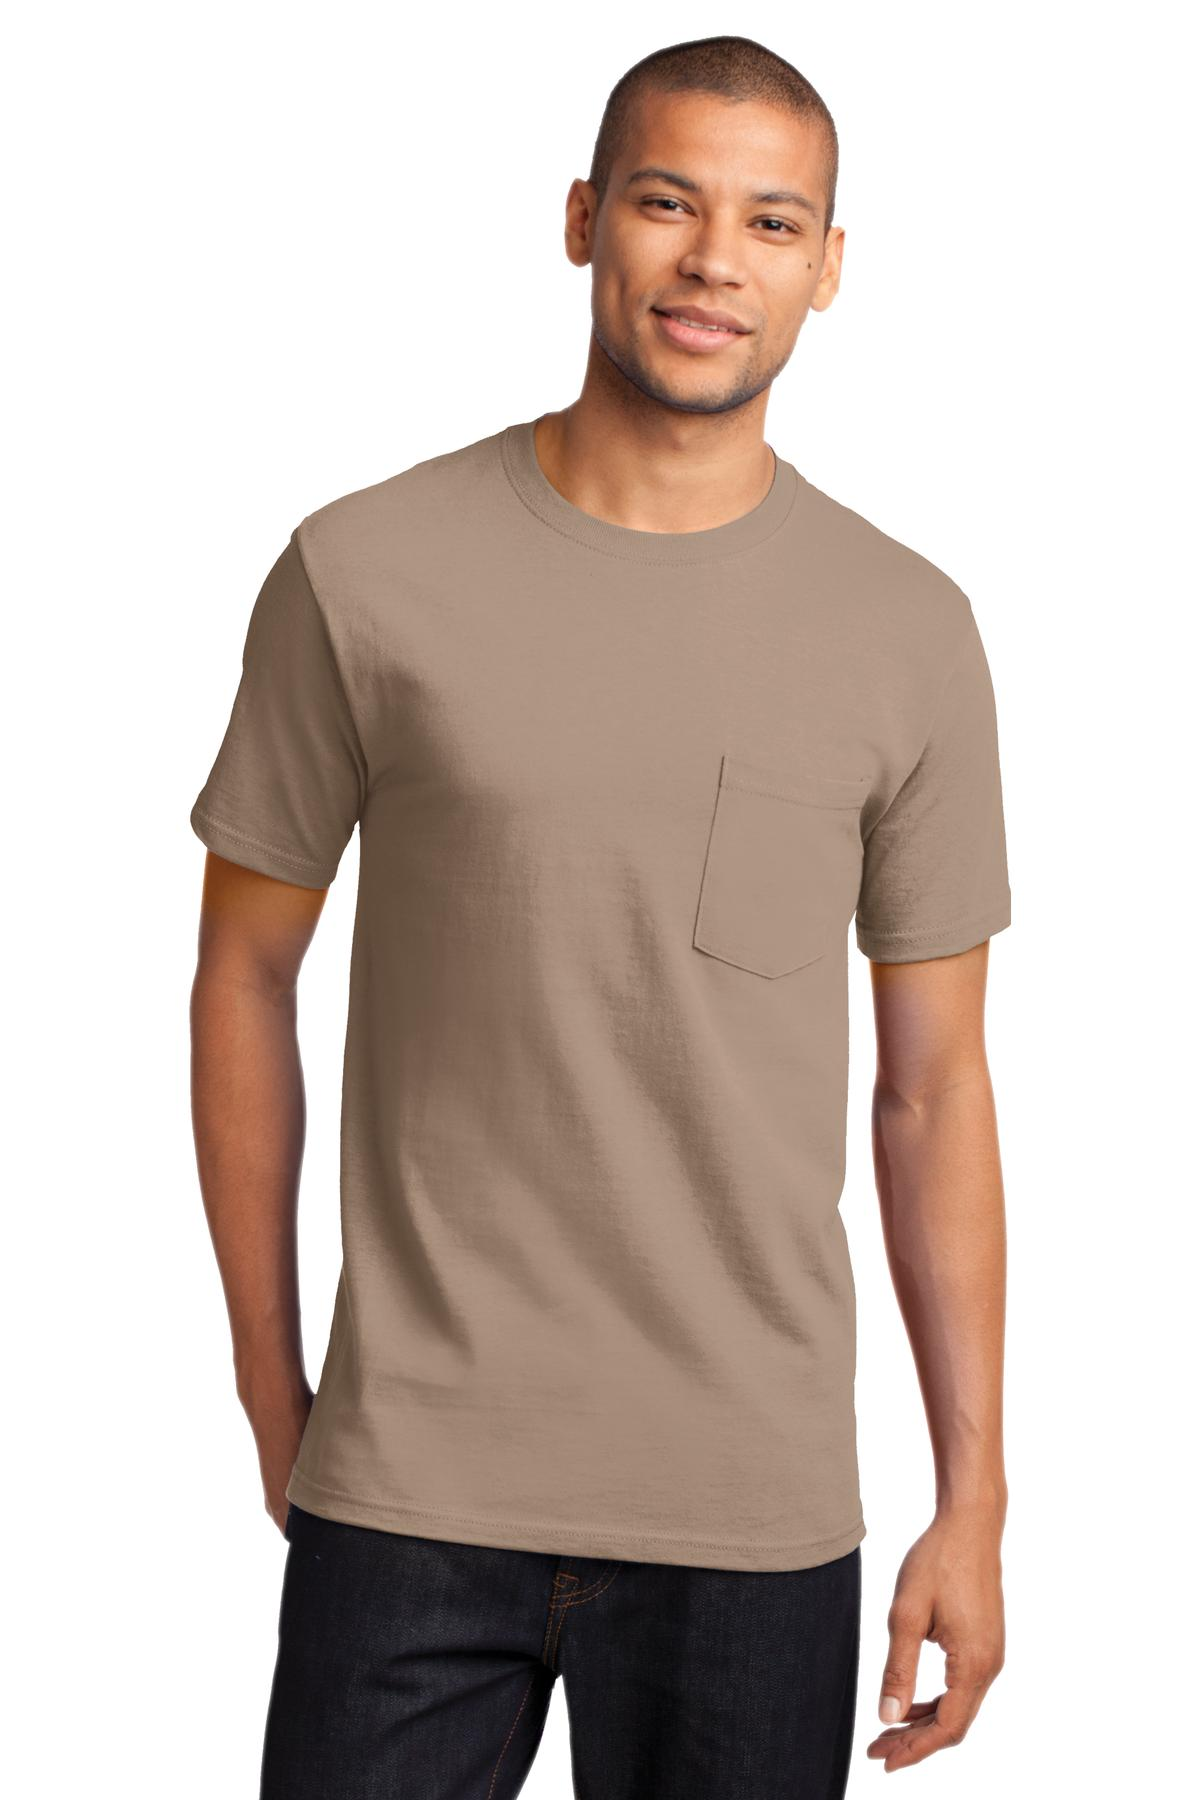 Port Company Mens Basic Pocket T Shirt Casual Cotton